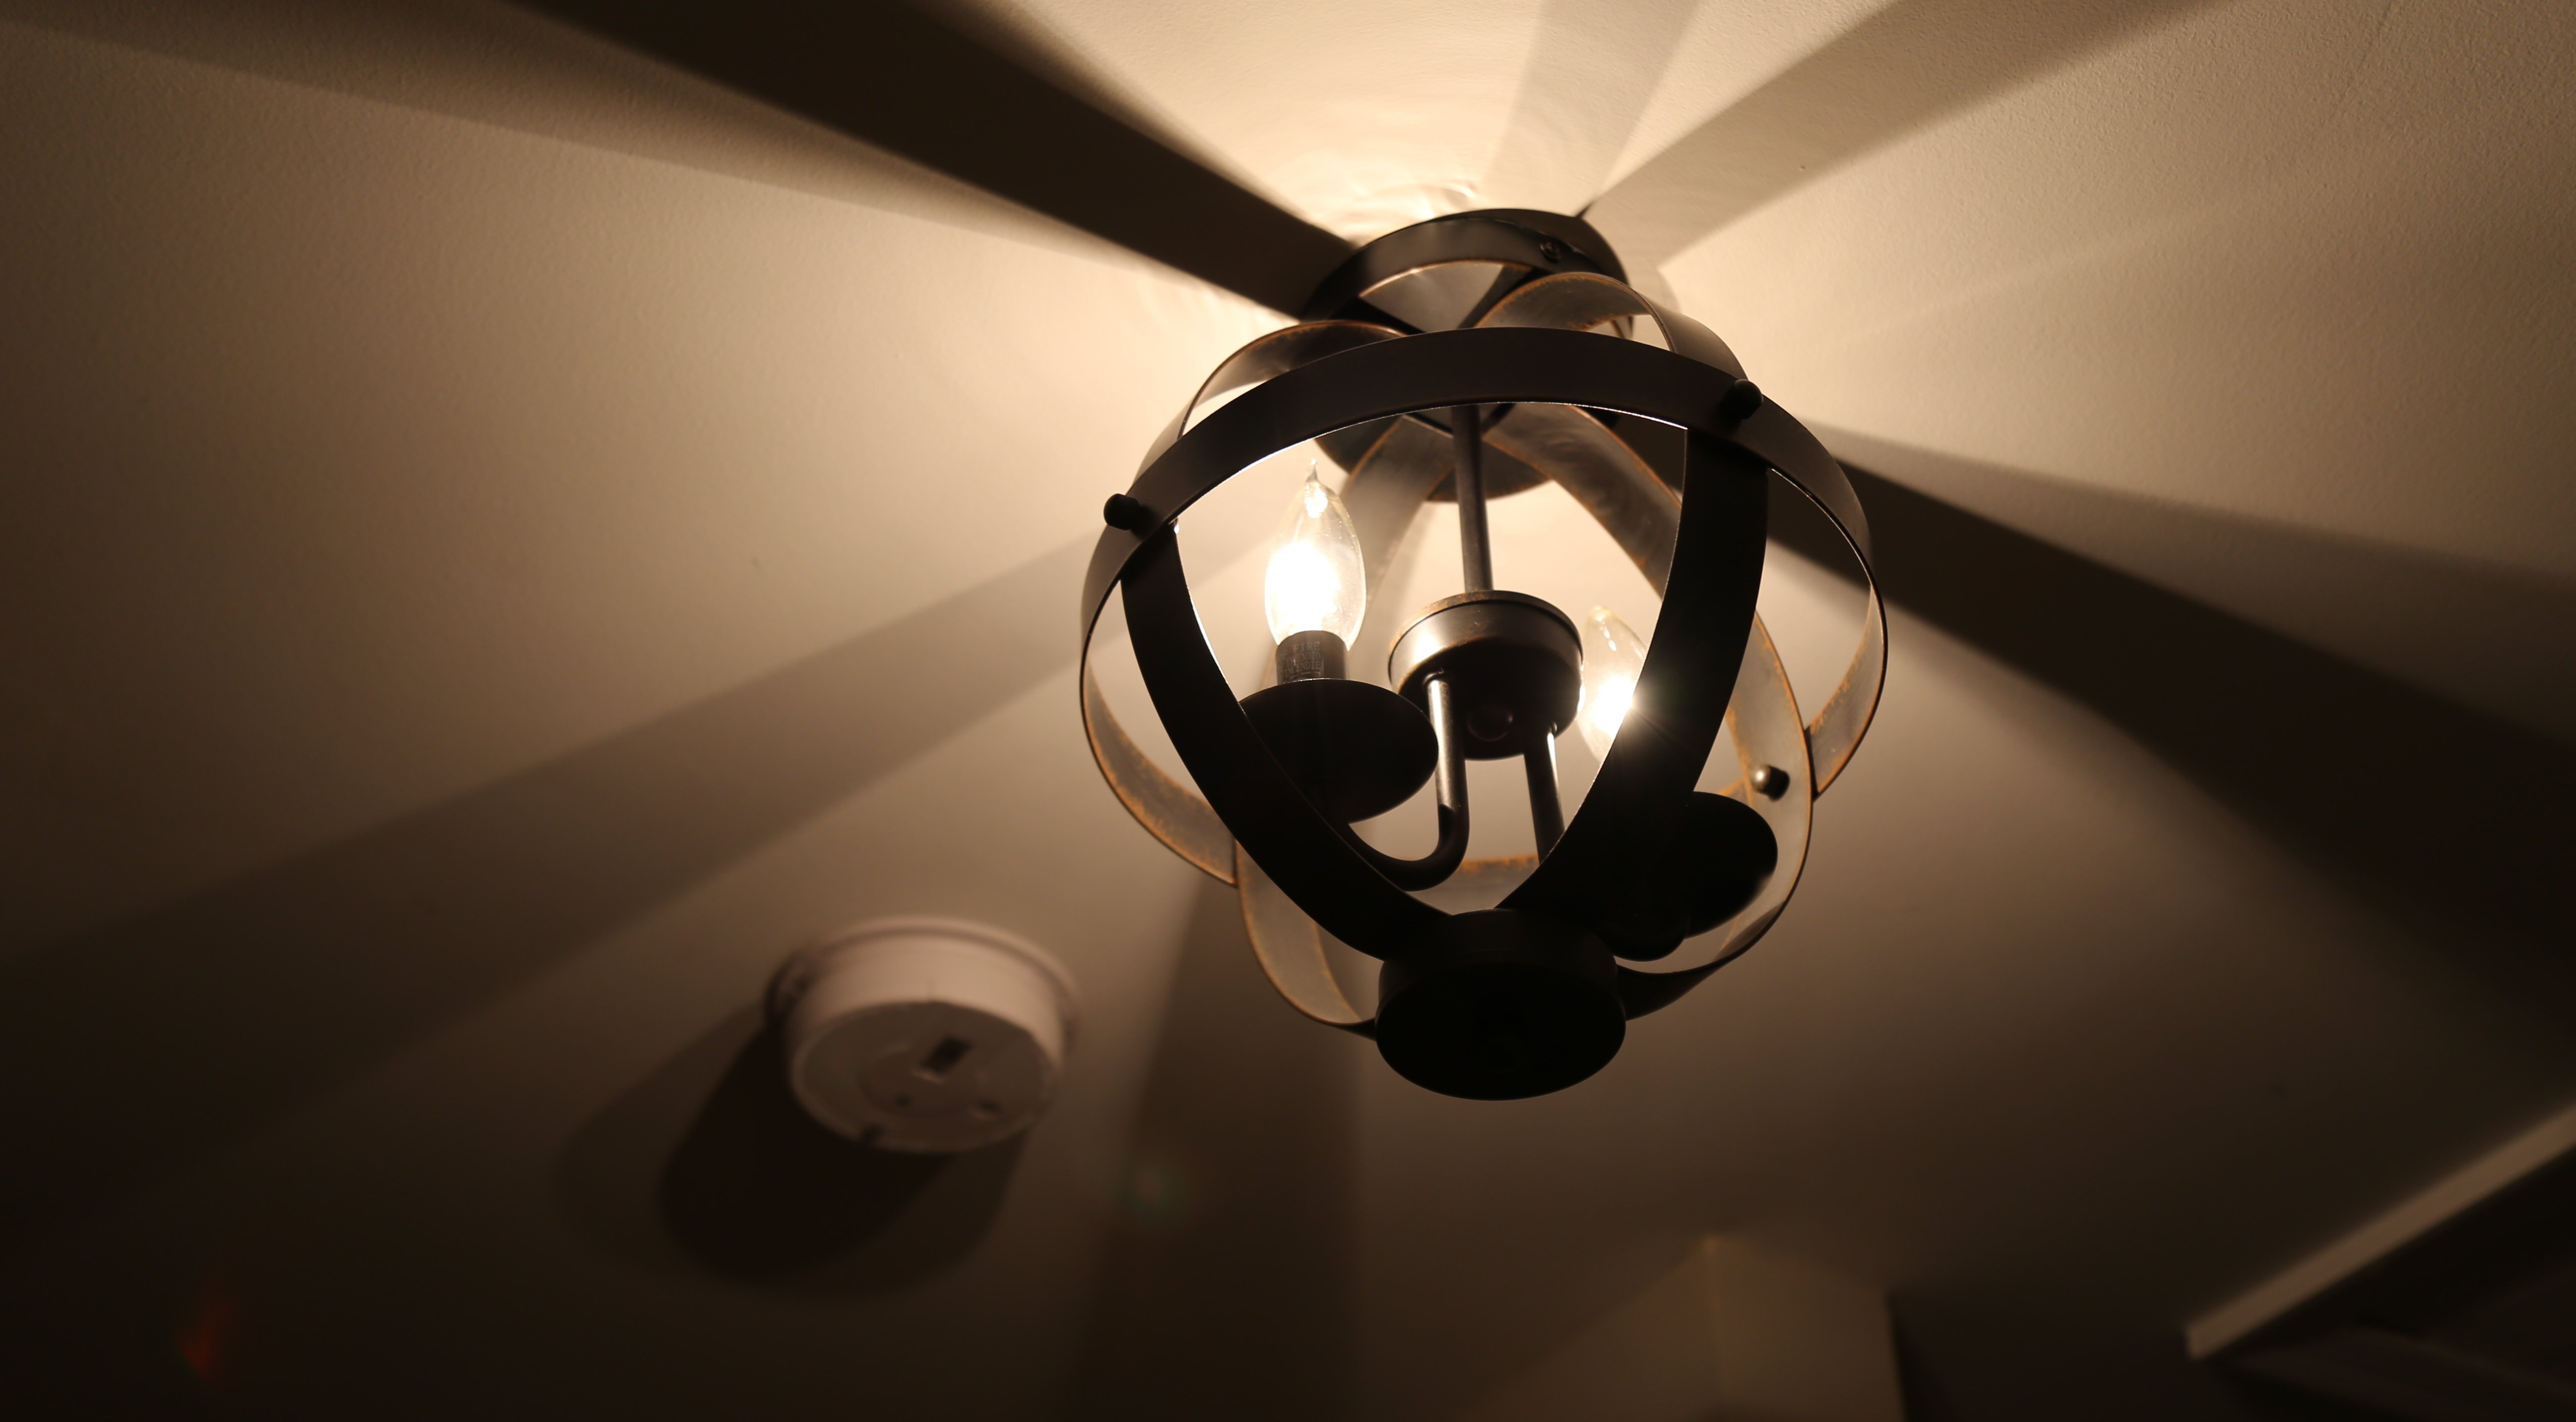 Electricians Crofton 21114 How To Install Recessed Lighting For Dramatic Effect The Family Best Electrician Md